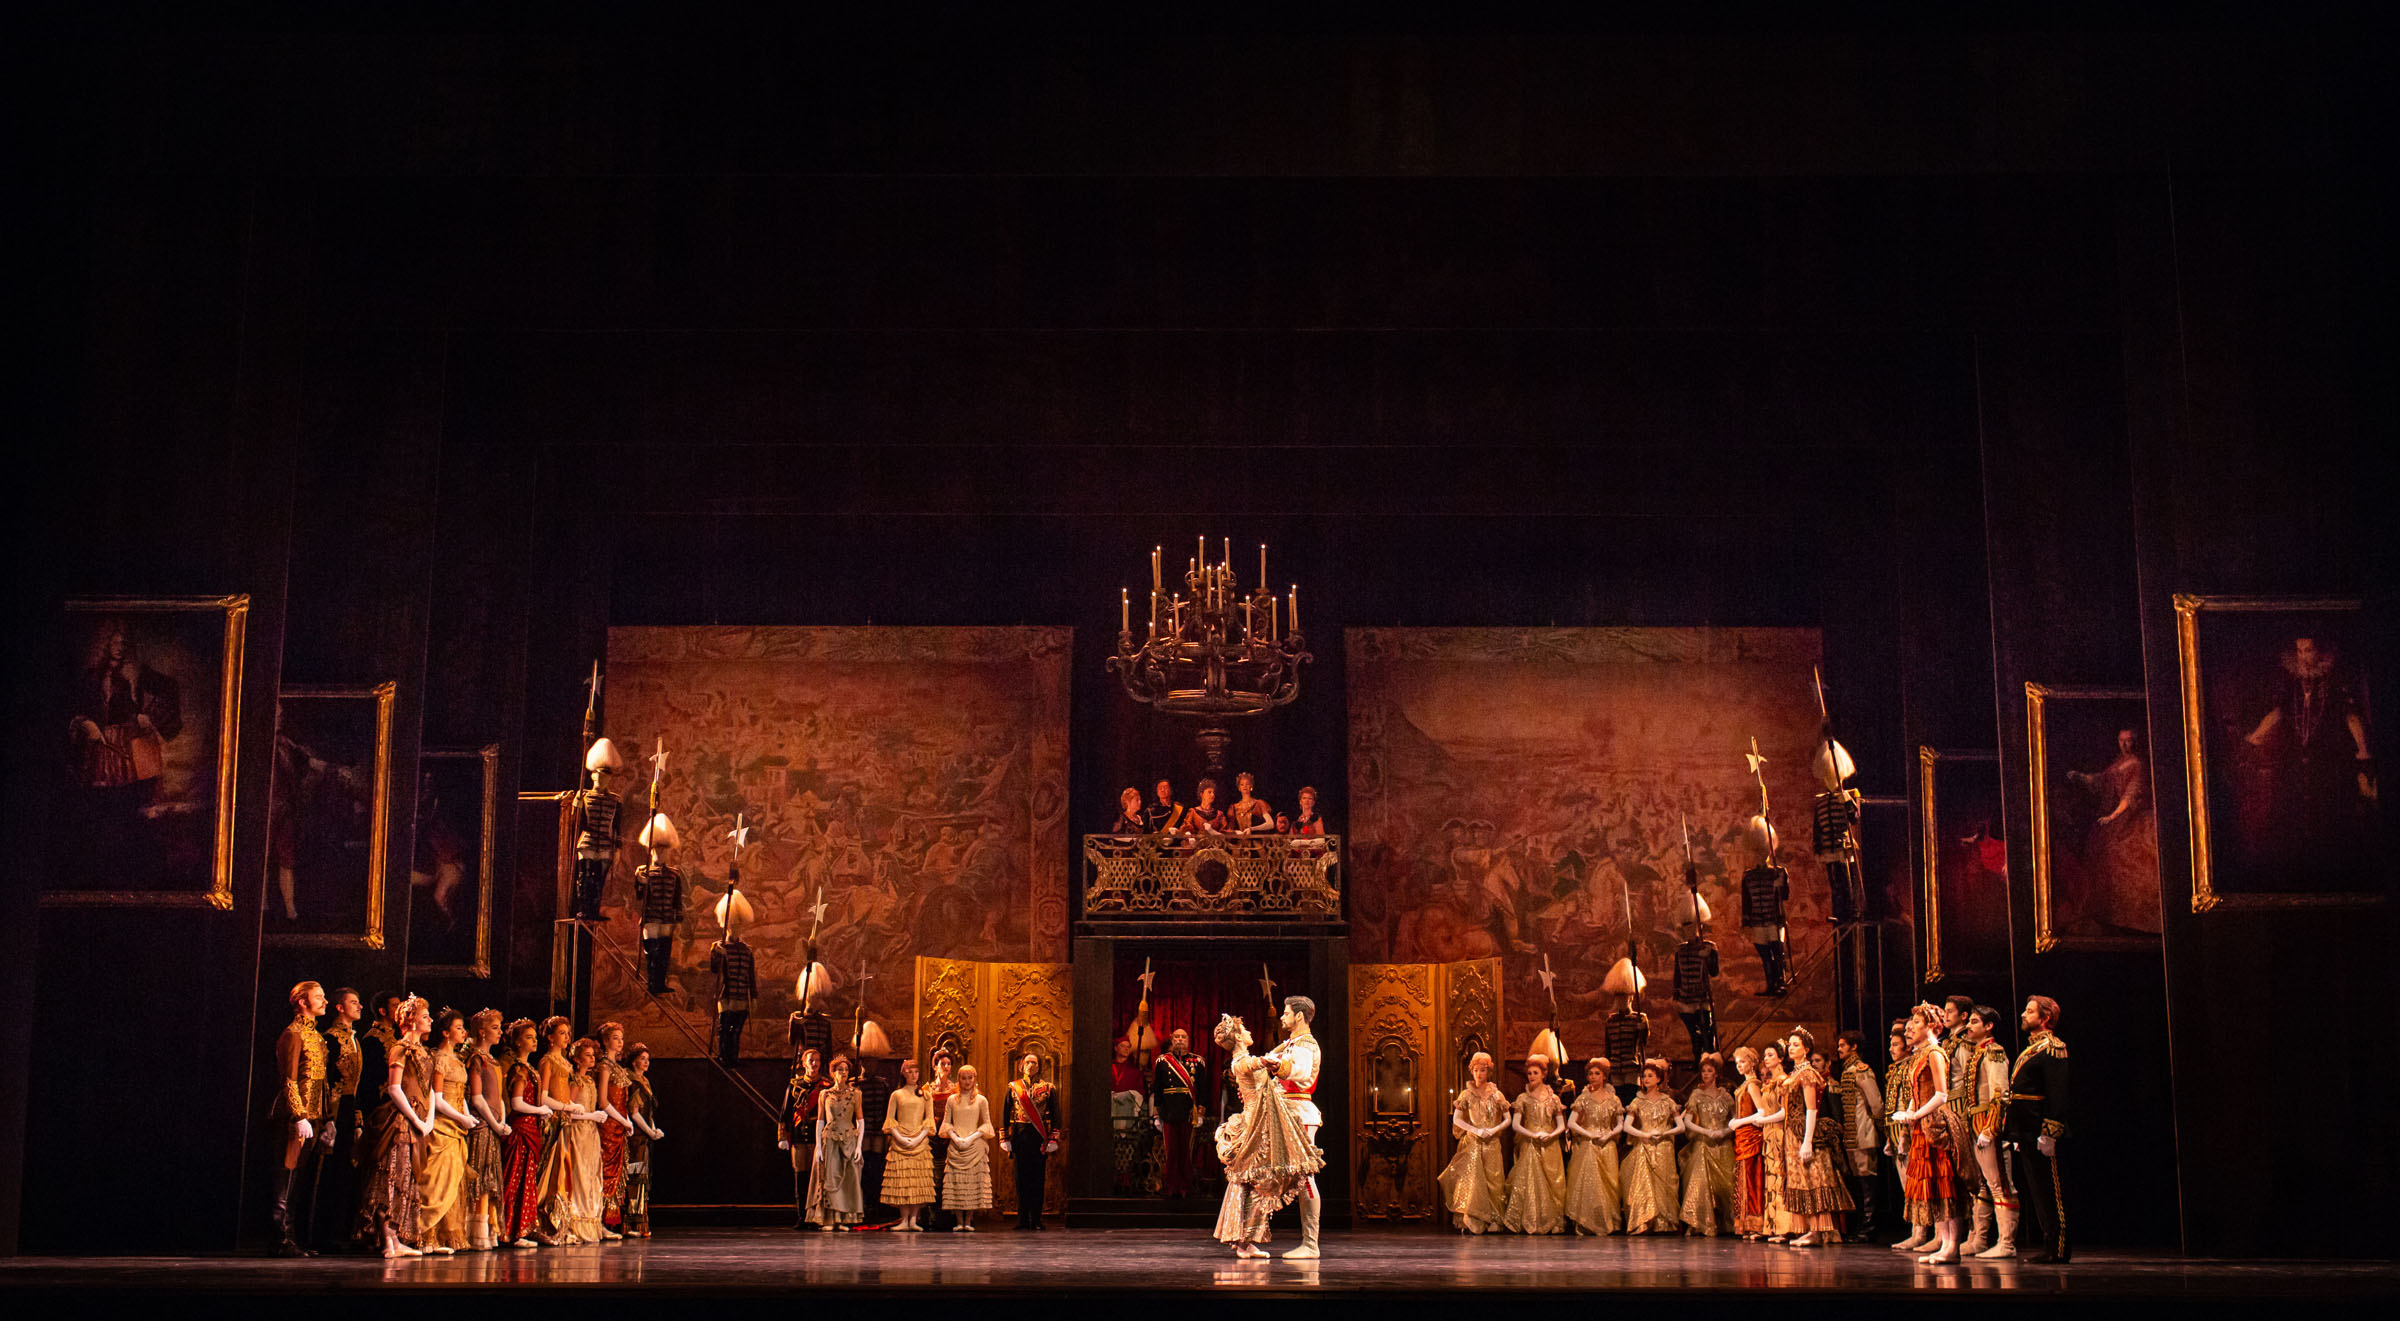 Artists of The Royal Ballet in Mayerling